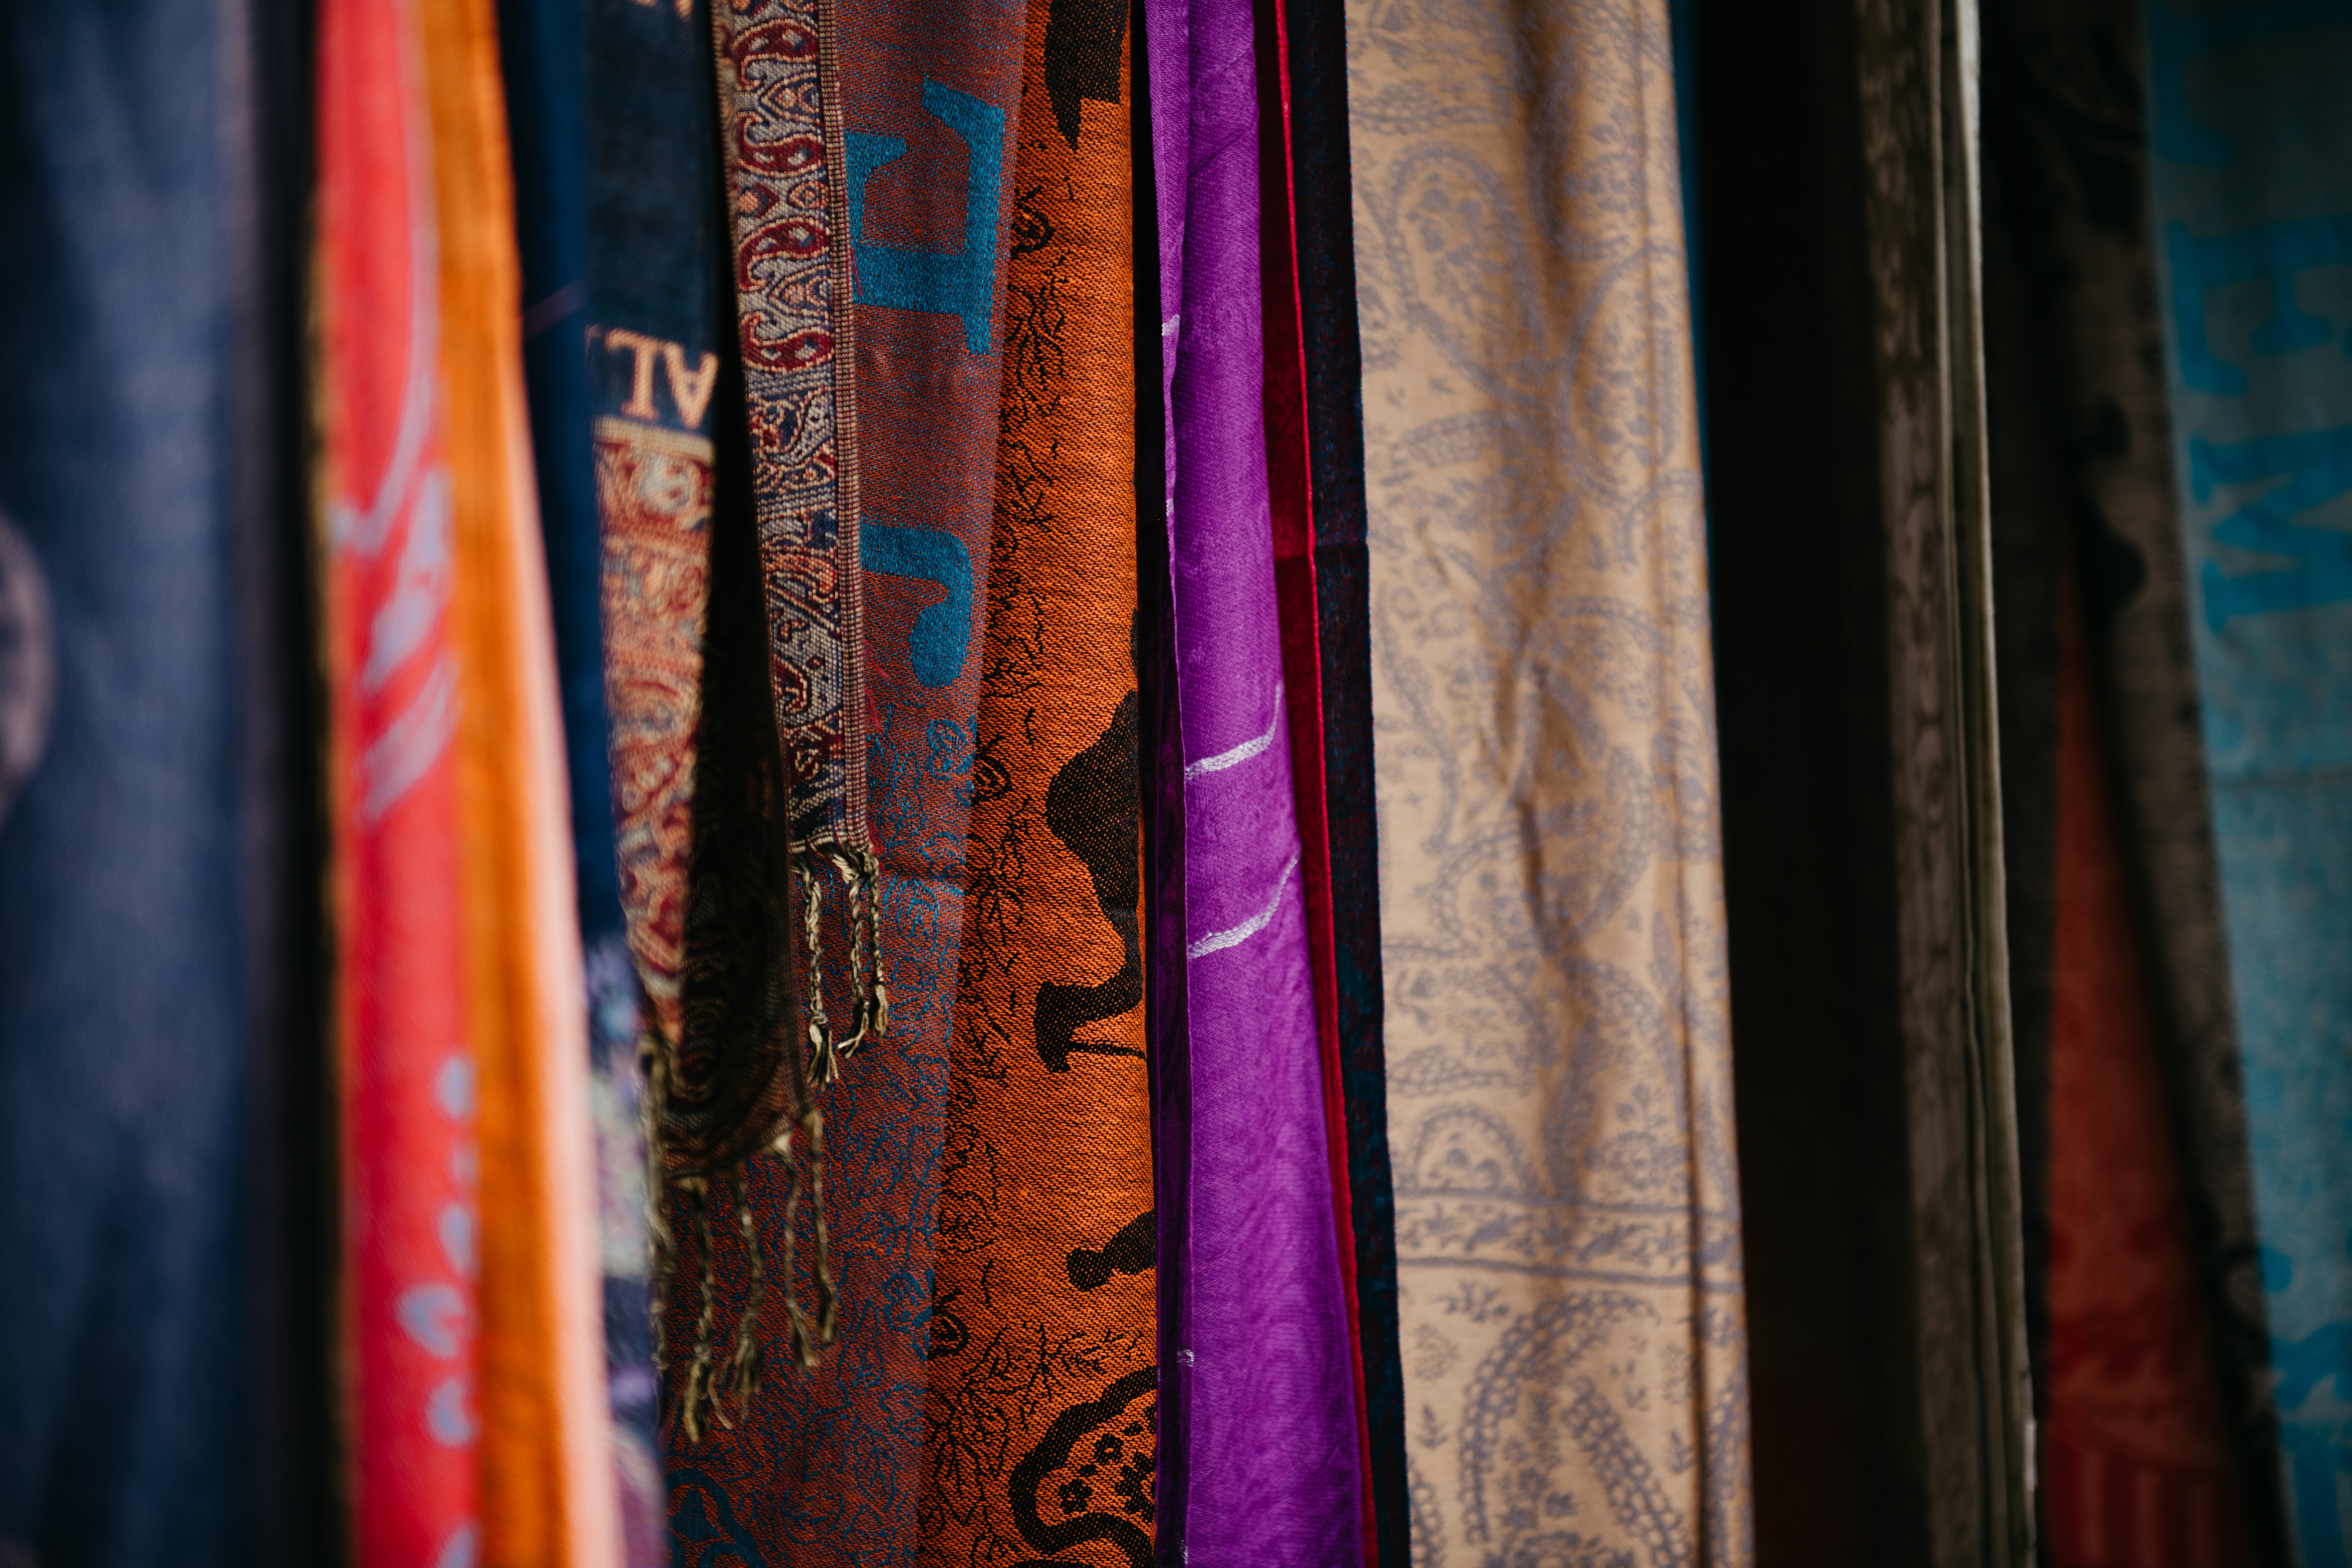 Assorted Color and Pattern Cloths